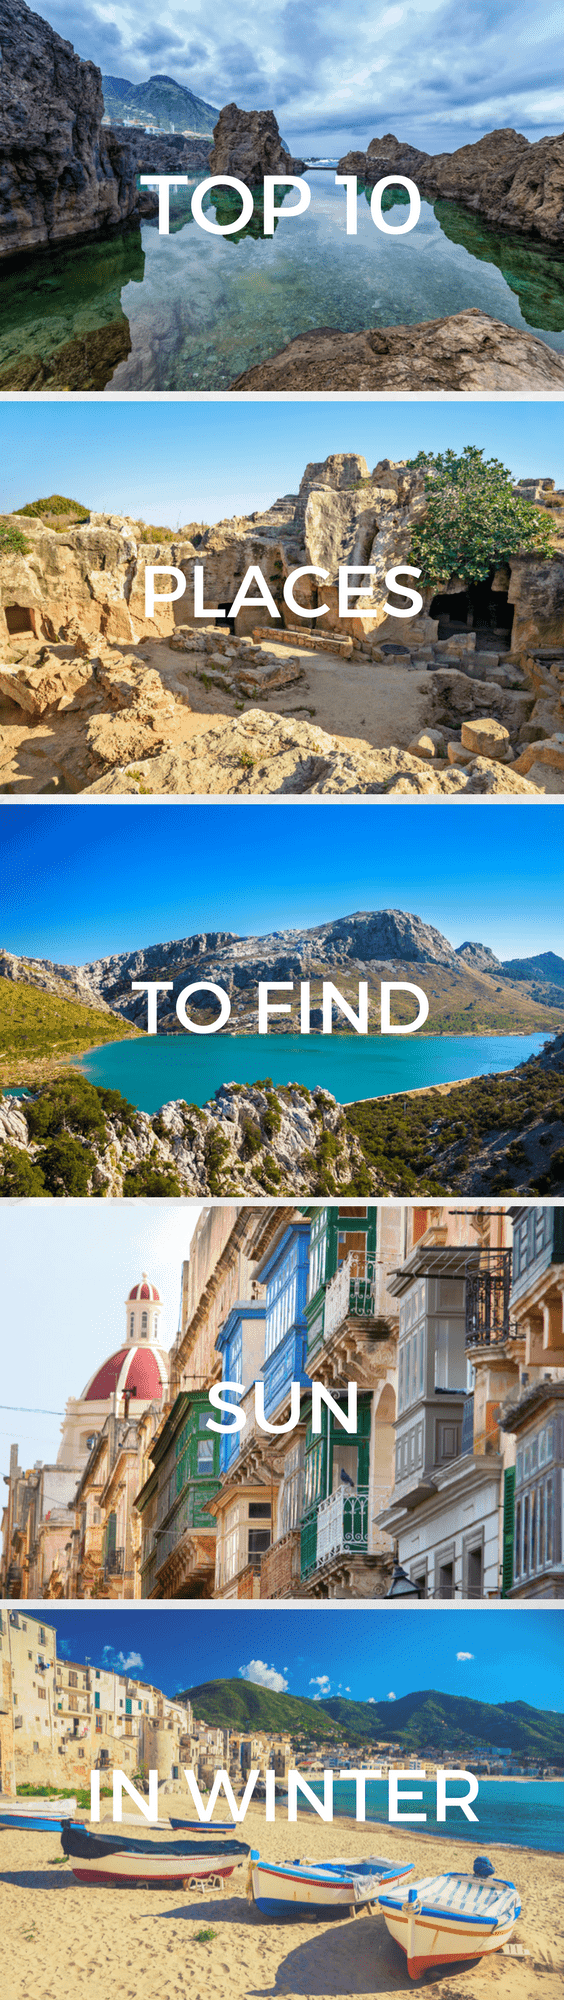 Searching for sun this winter? Find the top 10 European destinations for guaranteed sunshine to beat the blues this winter... Find out where to find the sun this winter.